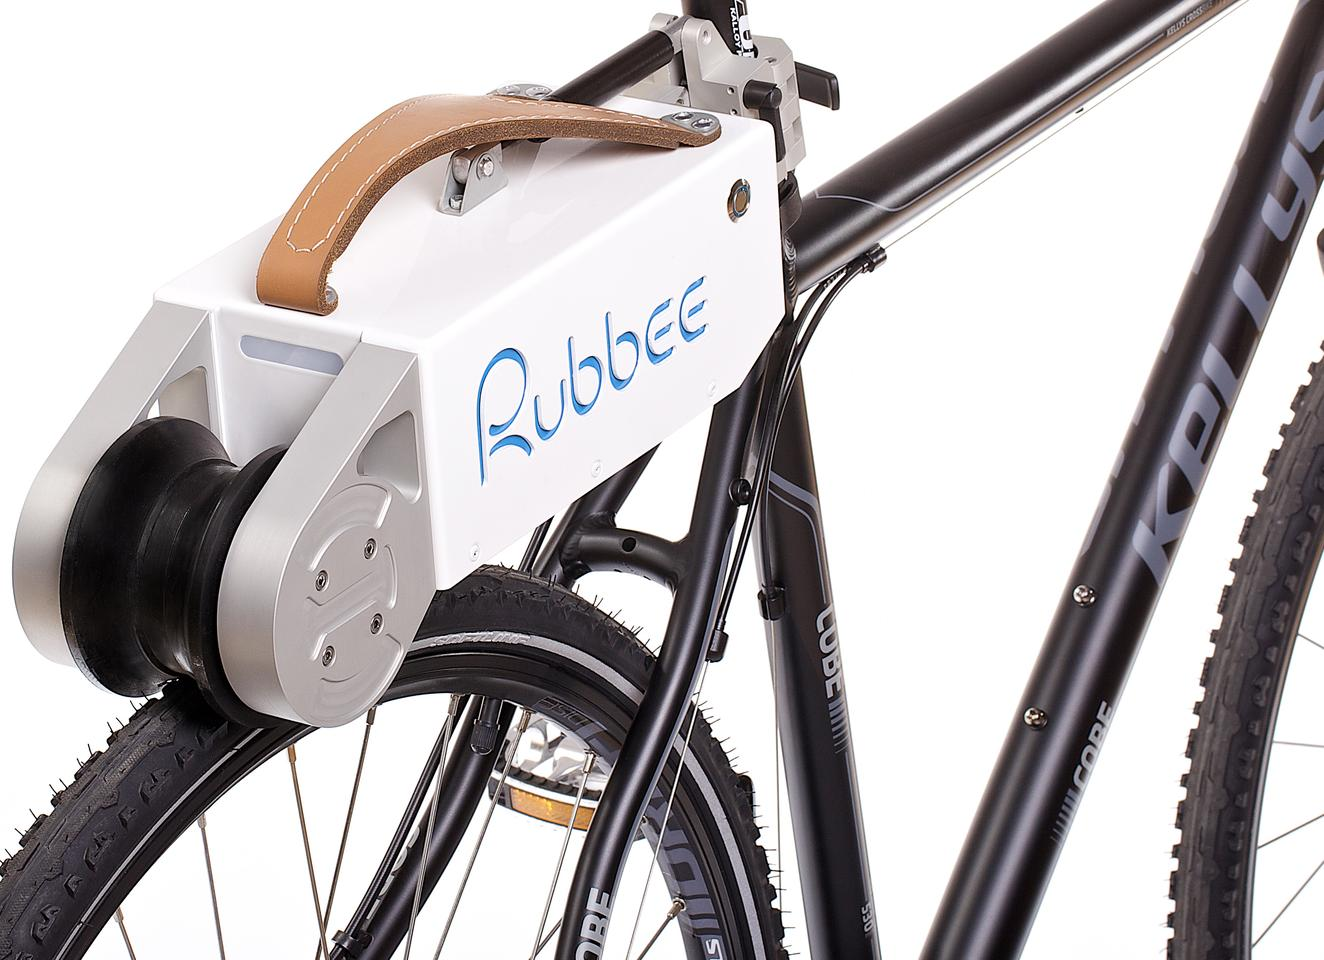 The Rubbee is waterproof, and features aluminum construction